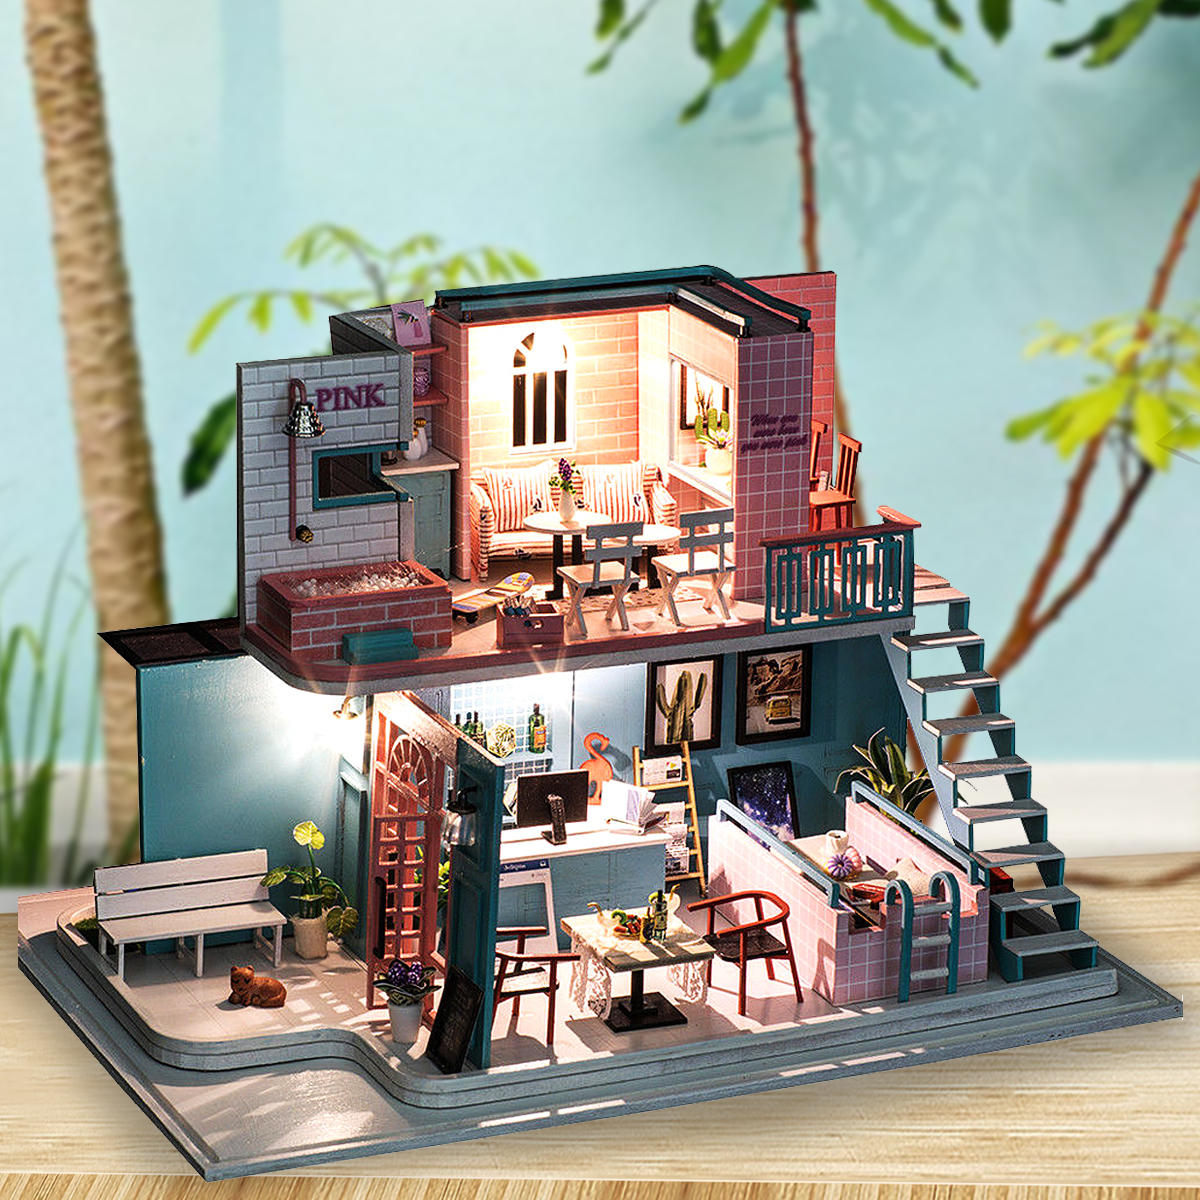 Handmade 3d Wooden Miniatures Doll House Pink Cafe Dollhouse Furniture Diy Miniature Toys For Girls Birthday Gifts